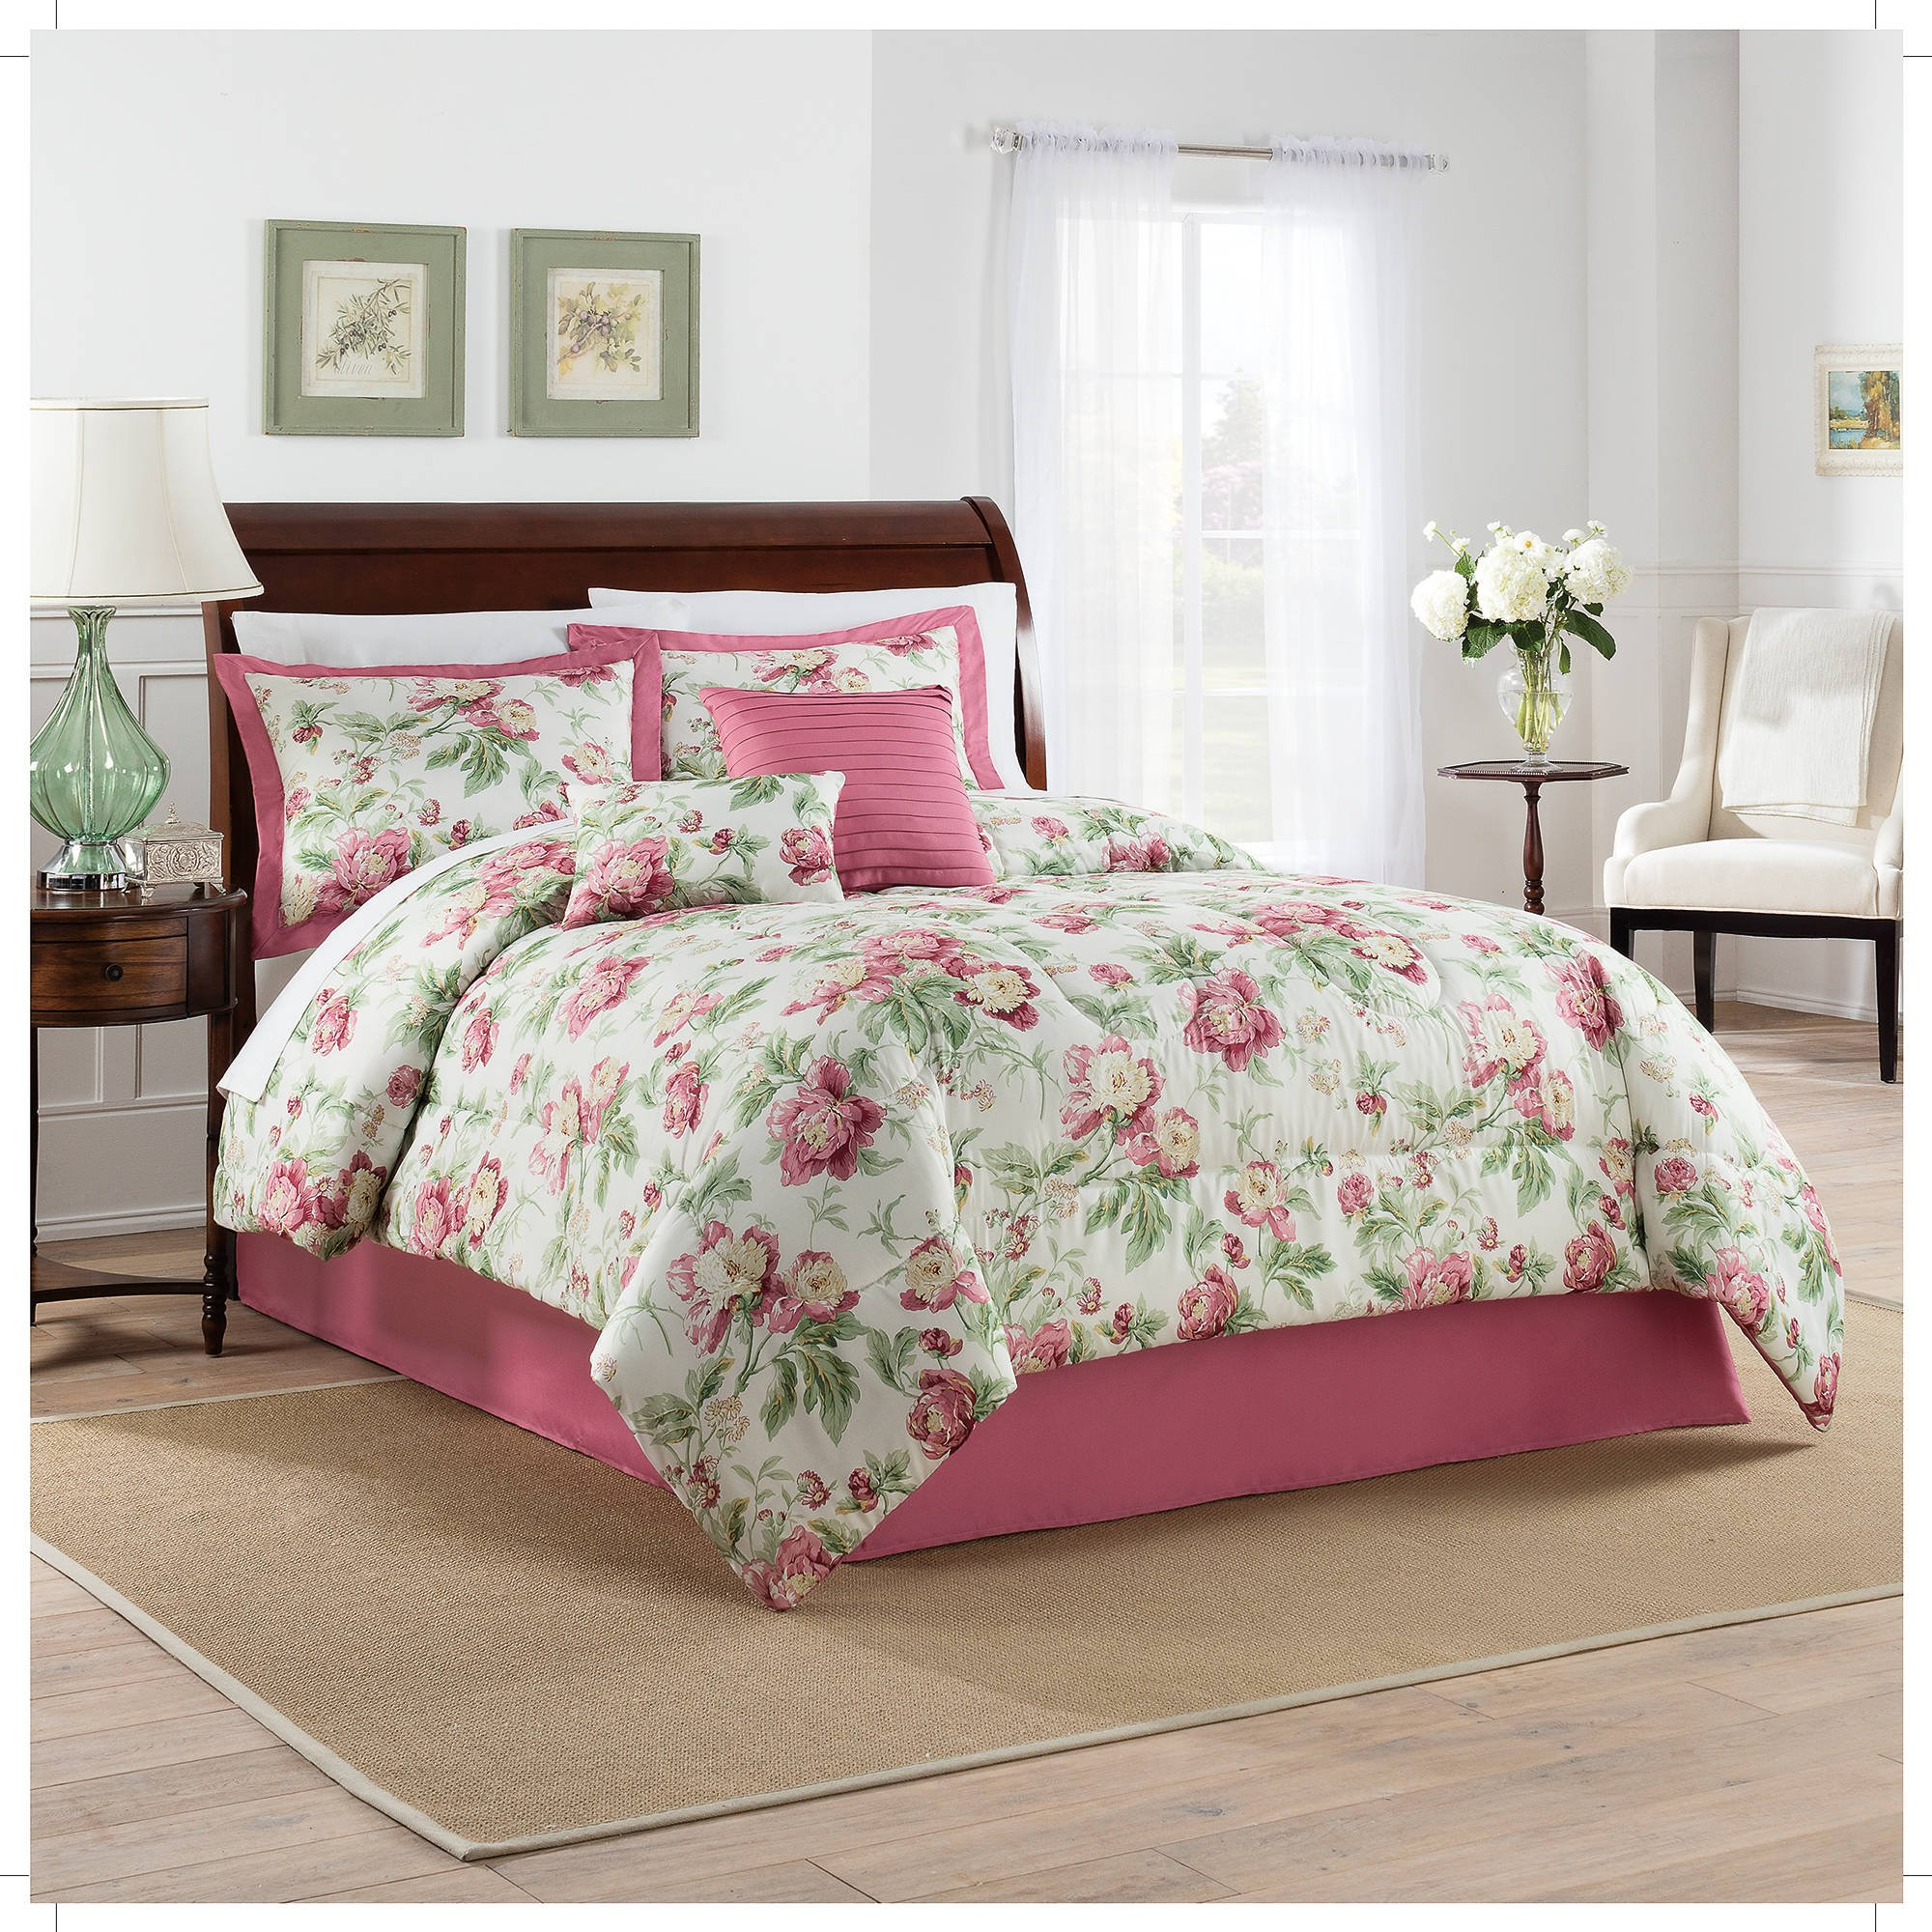 floral cambury comforters buy mafatlal vintage chambray double dohar online cotton comforter products bed